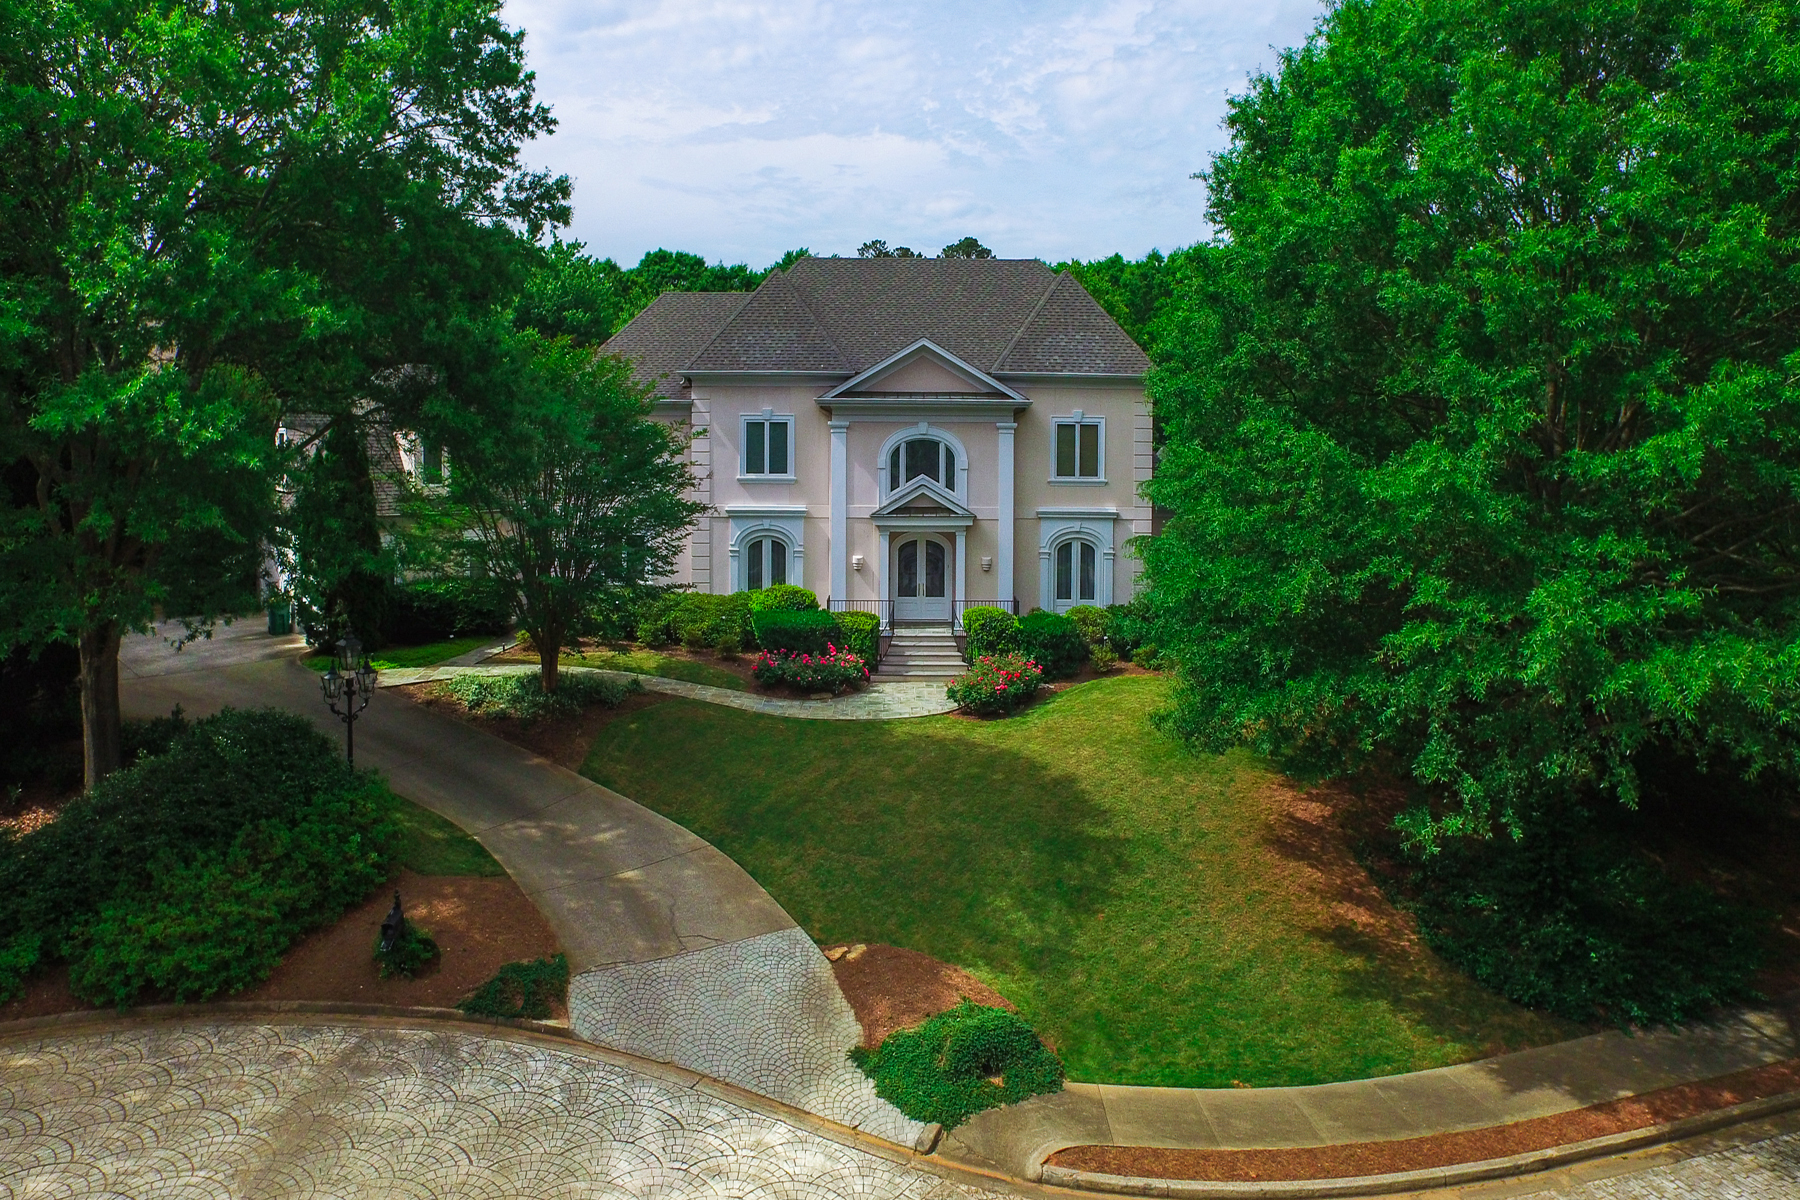 Single Family Home for Sale at Elegant Custom Built Home In Desirable Sandy Springs Neighborhood 5650 Cross Gate Drive Sandy Springs, Georgia 30327 United States